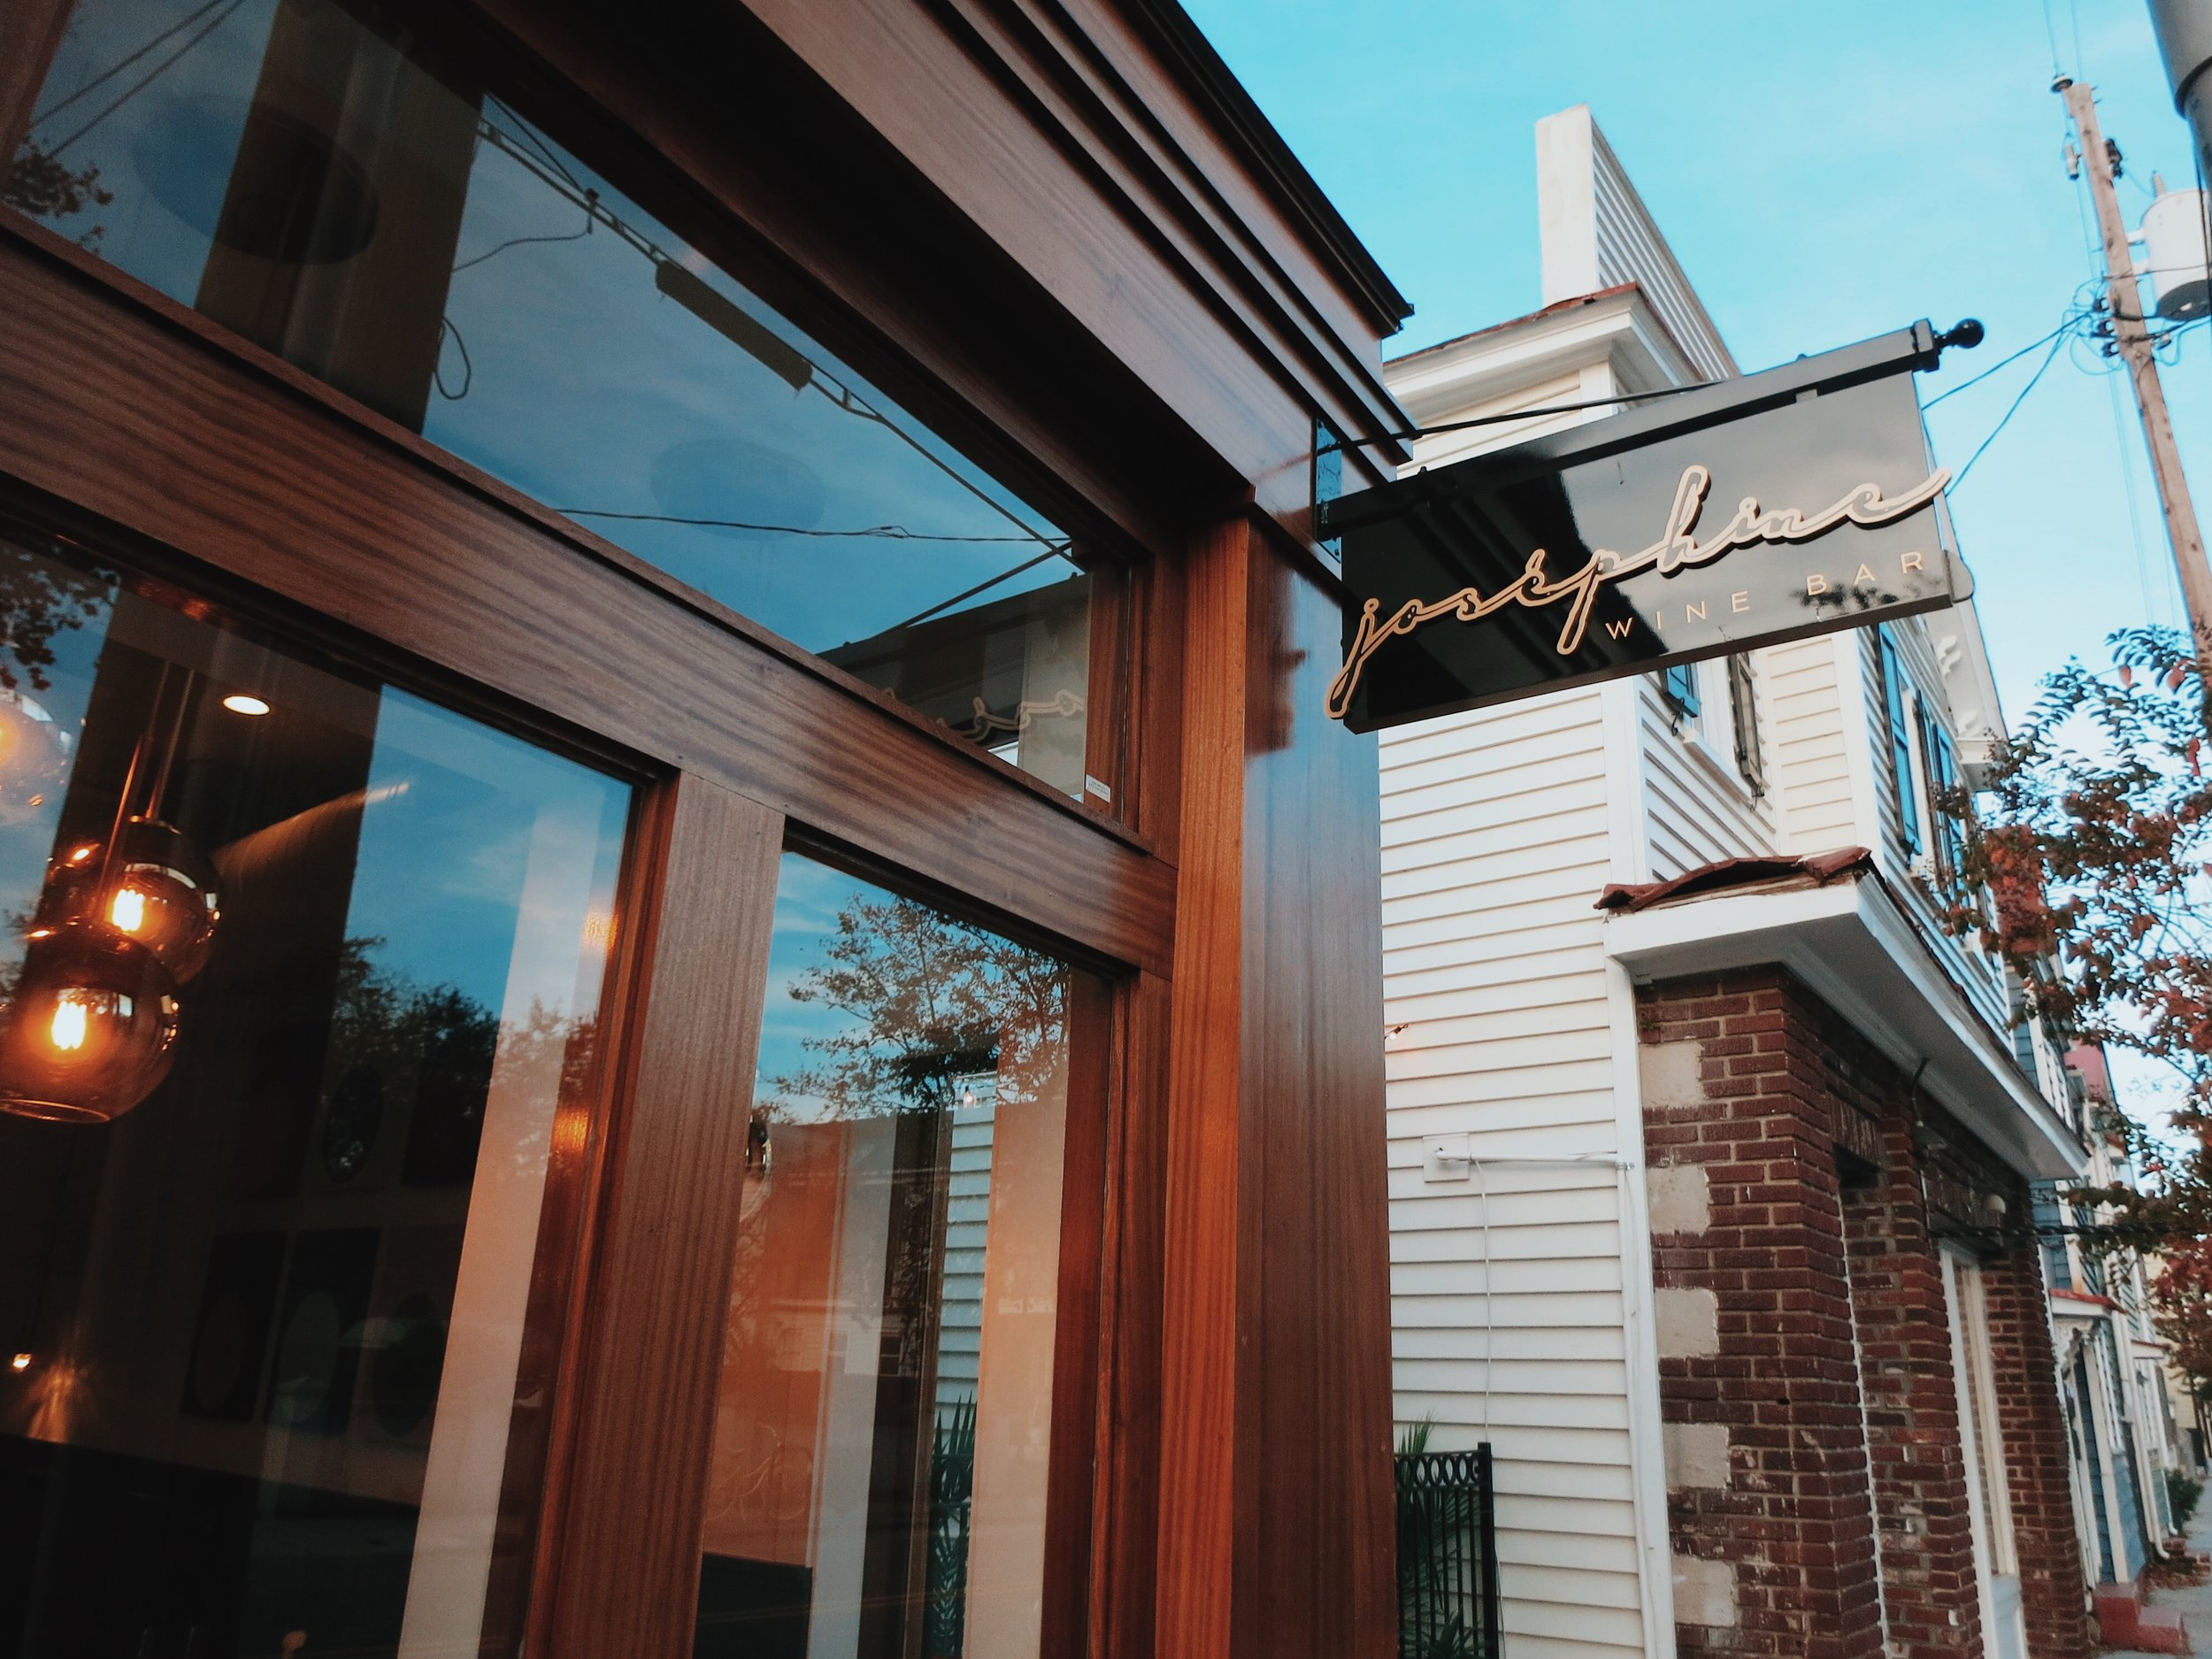 I Love That For You - Josephine Wine Bar Outdoor Sign.jpg